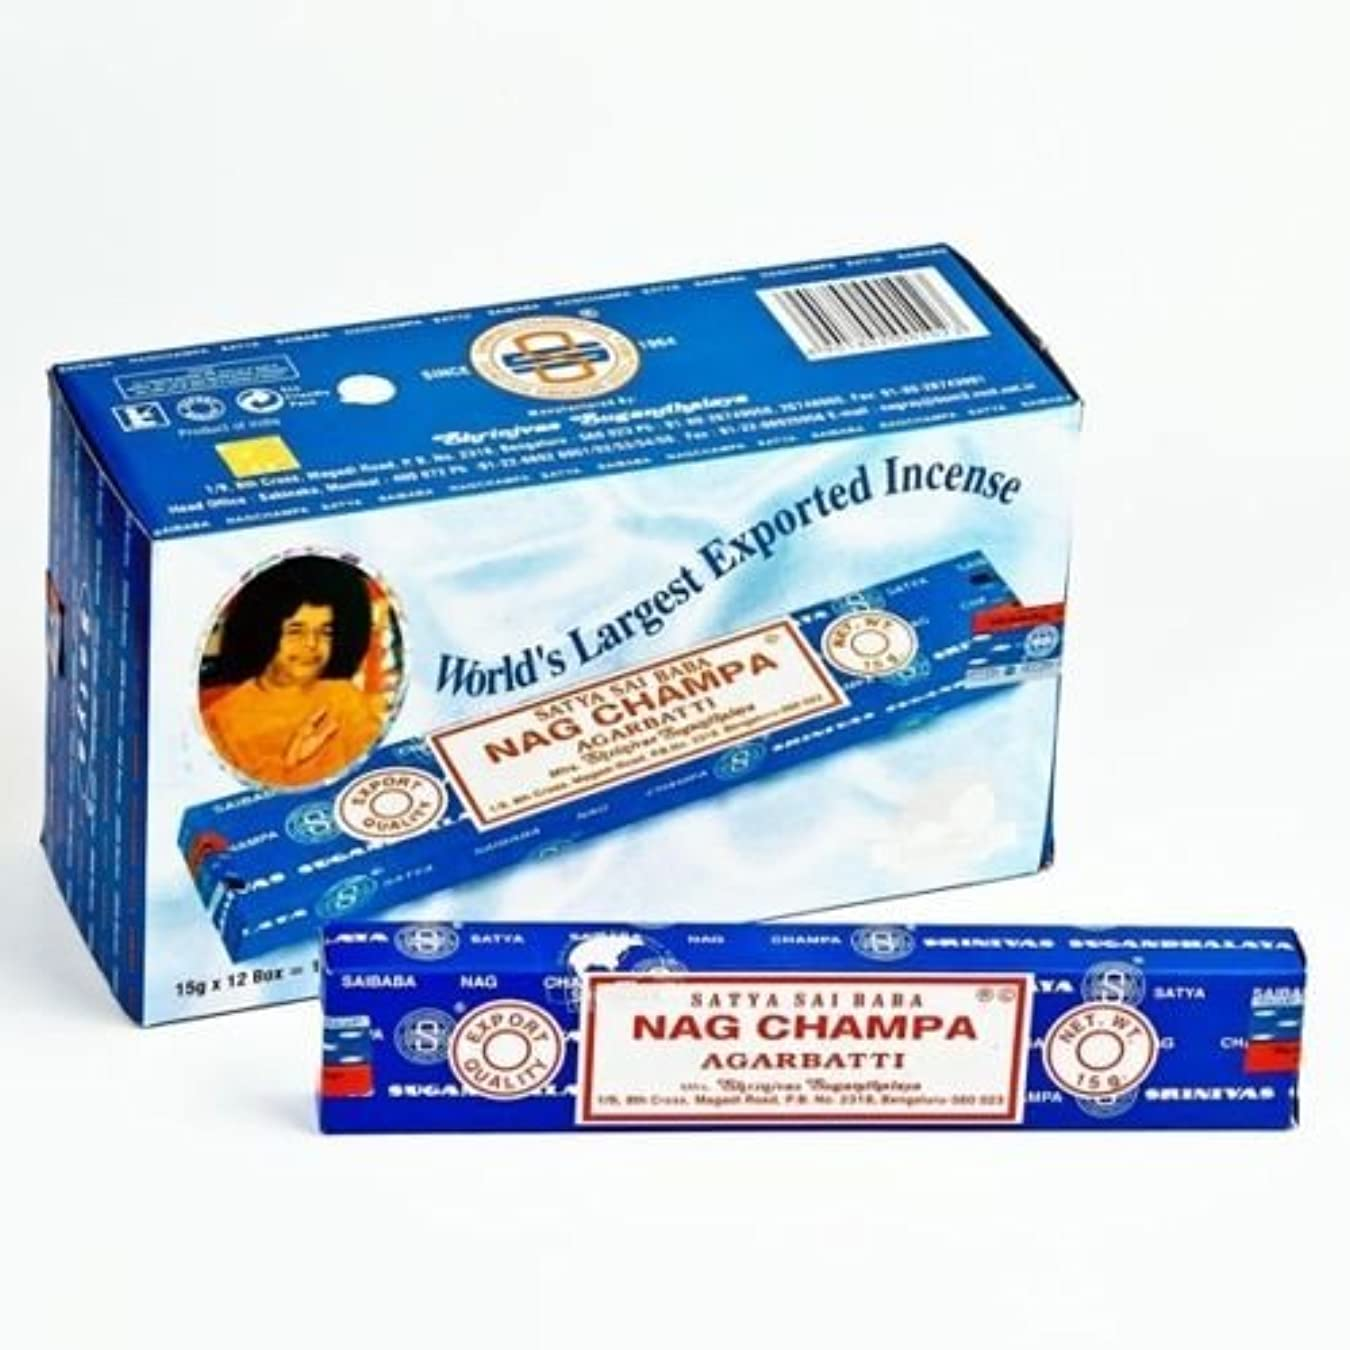 Nag Champa incense sticks 15G X 12 BOX = 180G